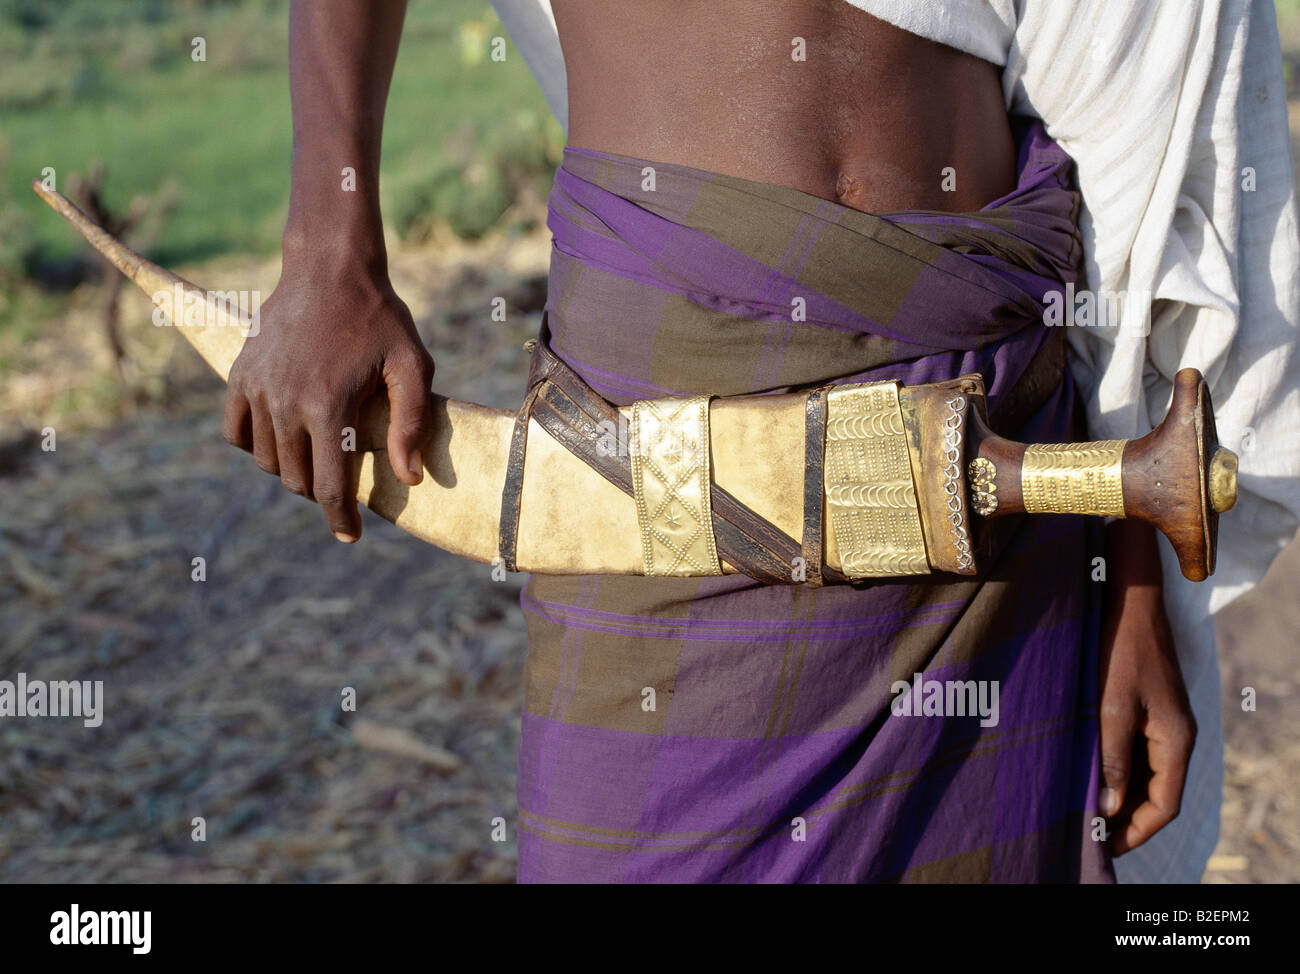 Warriors of the nomadic Afar tribe carry large curved daggers, known as jile, strapped to their waists. - Stock Image